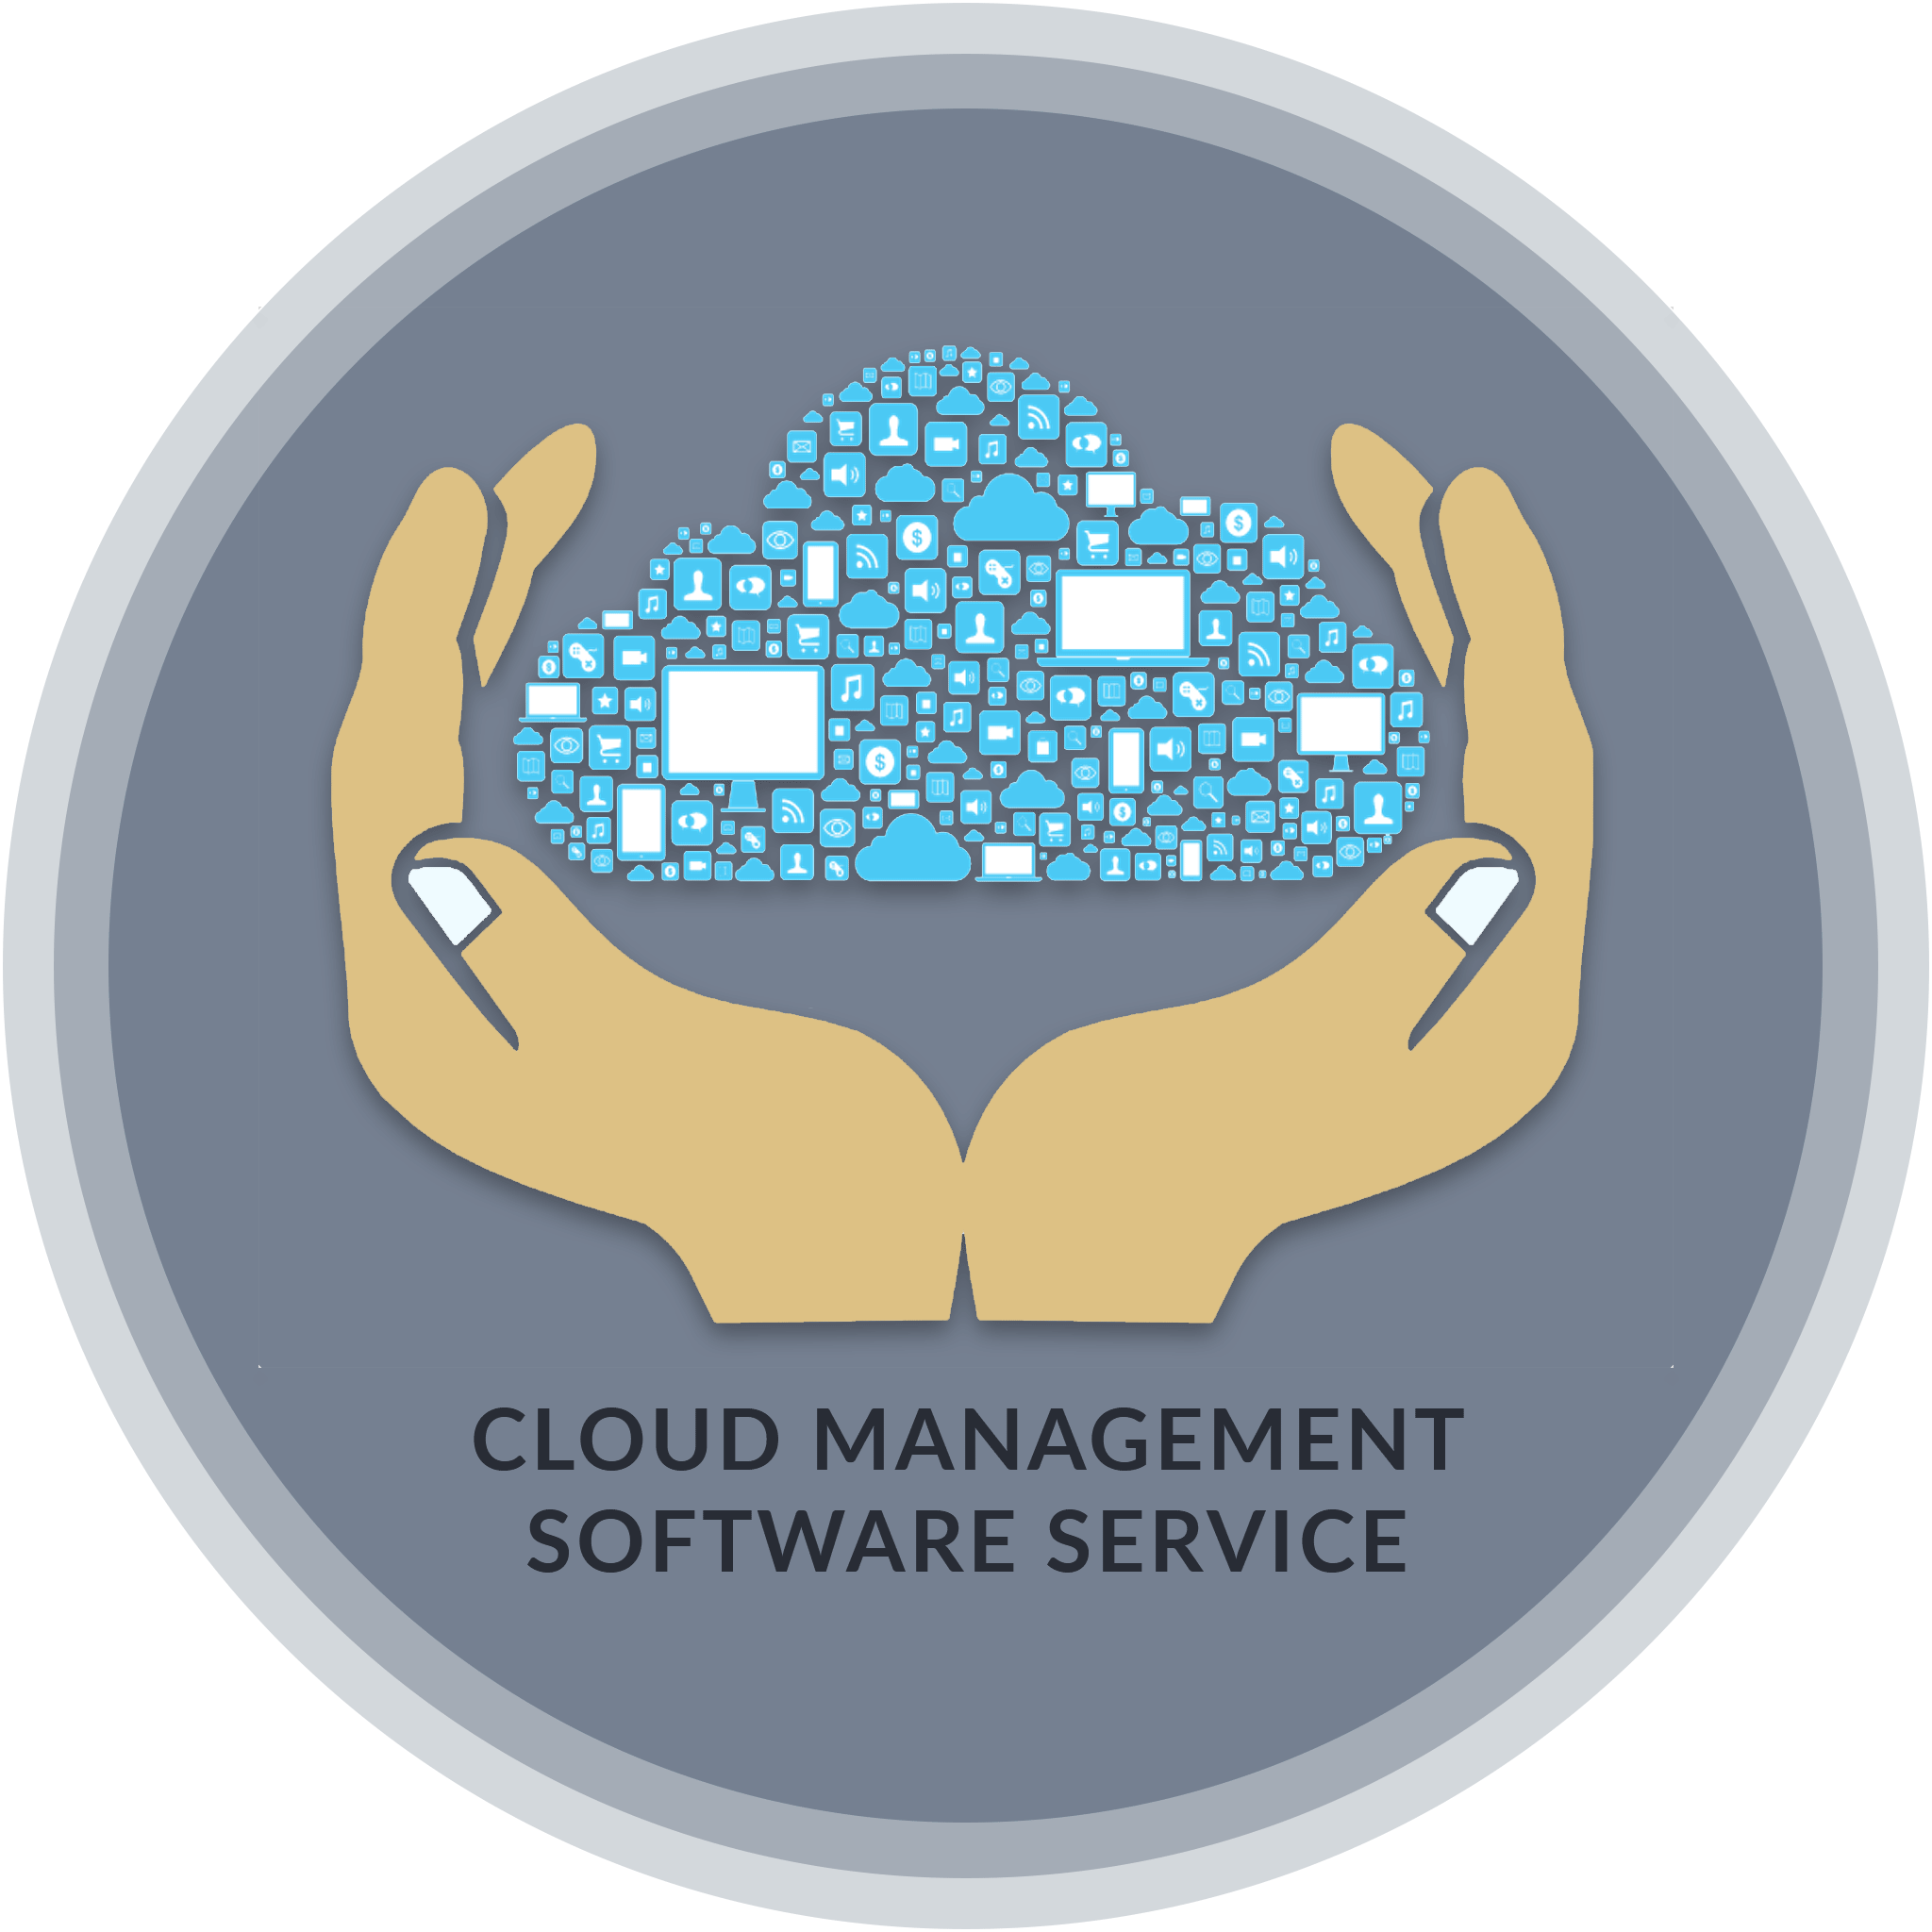 Cloud Management Software Services Provider Company | SSTech